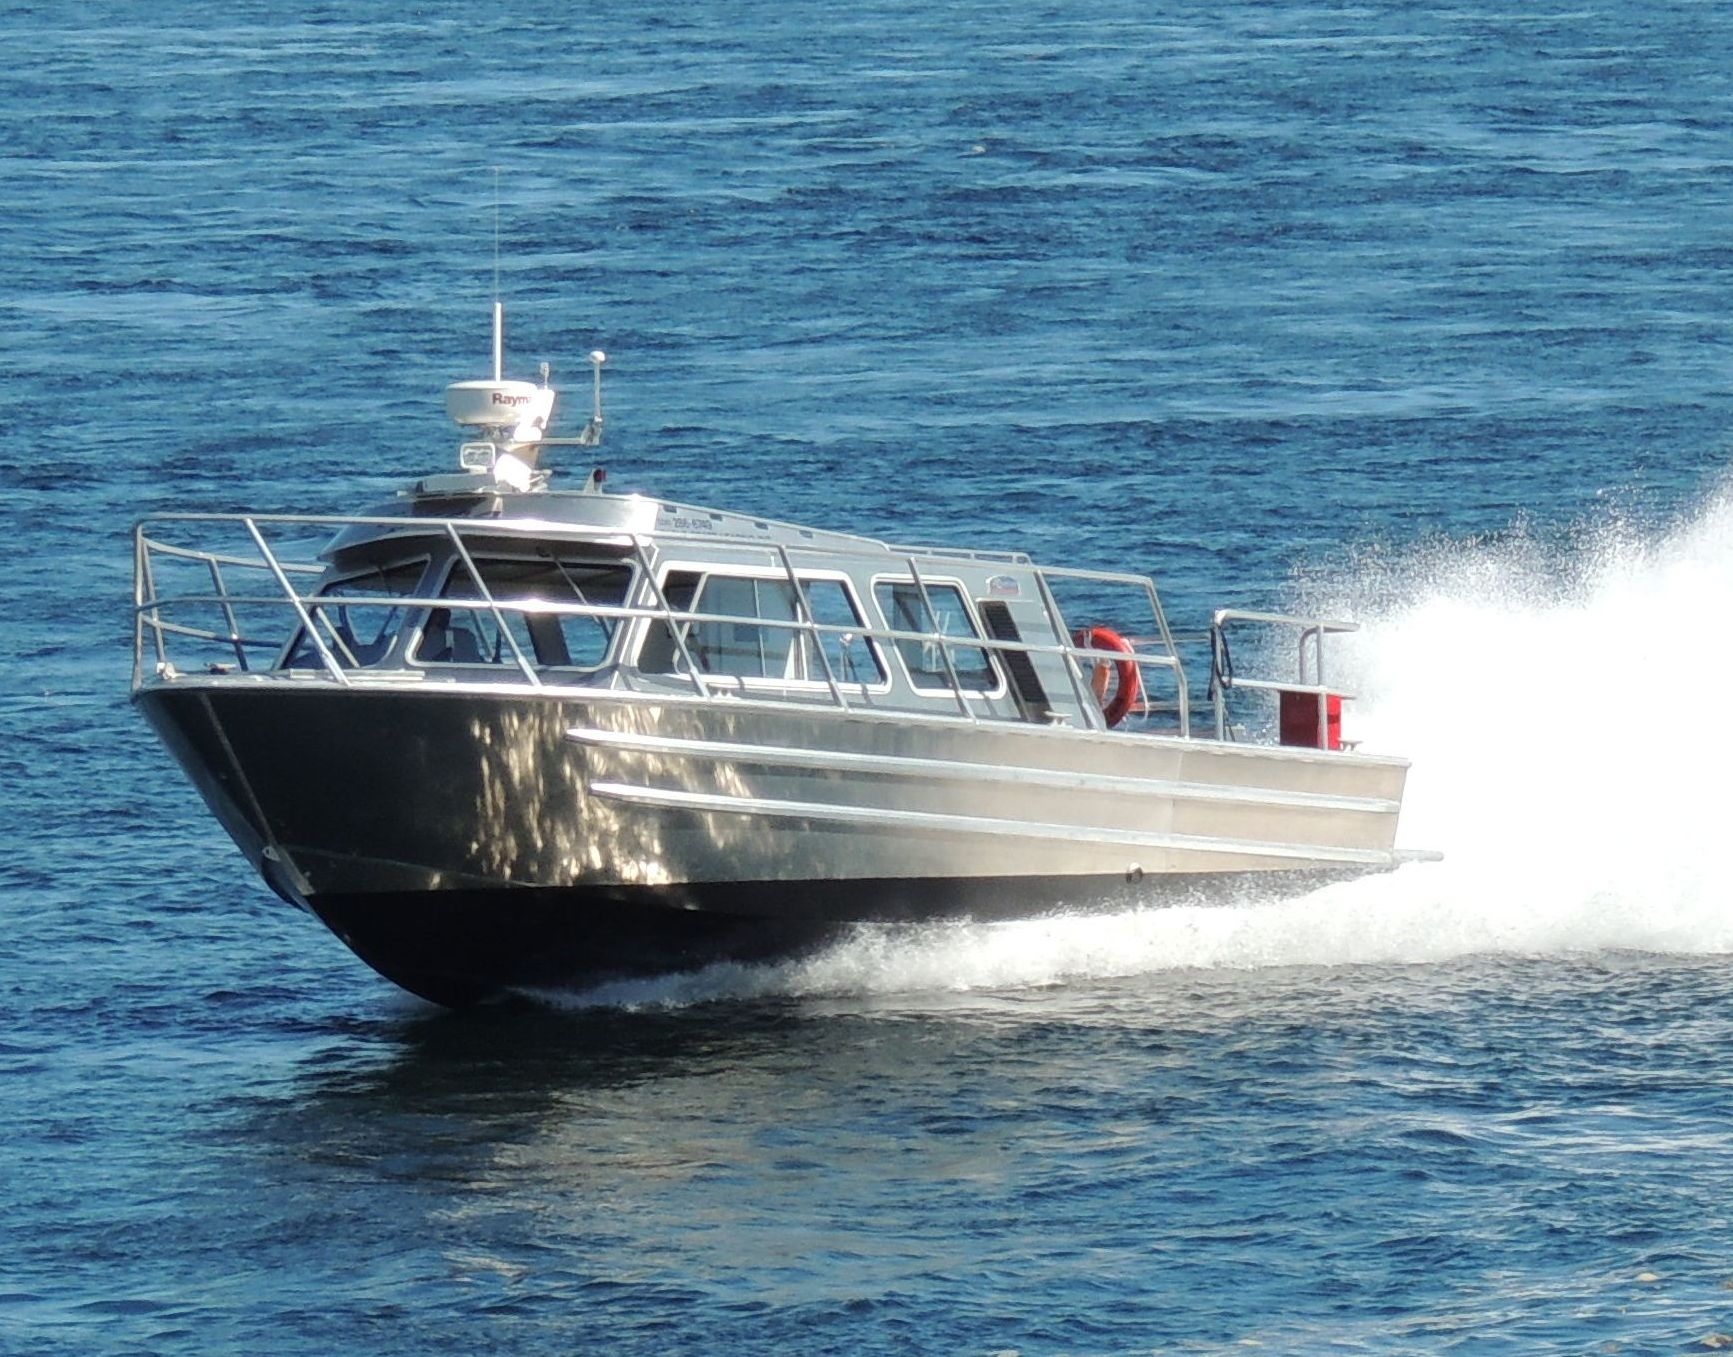 New Aluminum Boat Archives - EagleCraft Aluminum Boats, builders of commercial, pleasure and ...